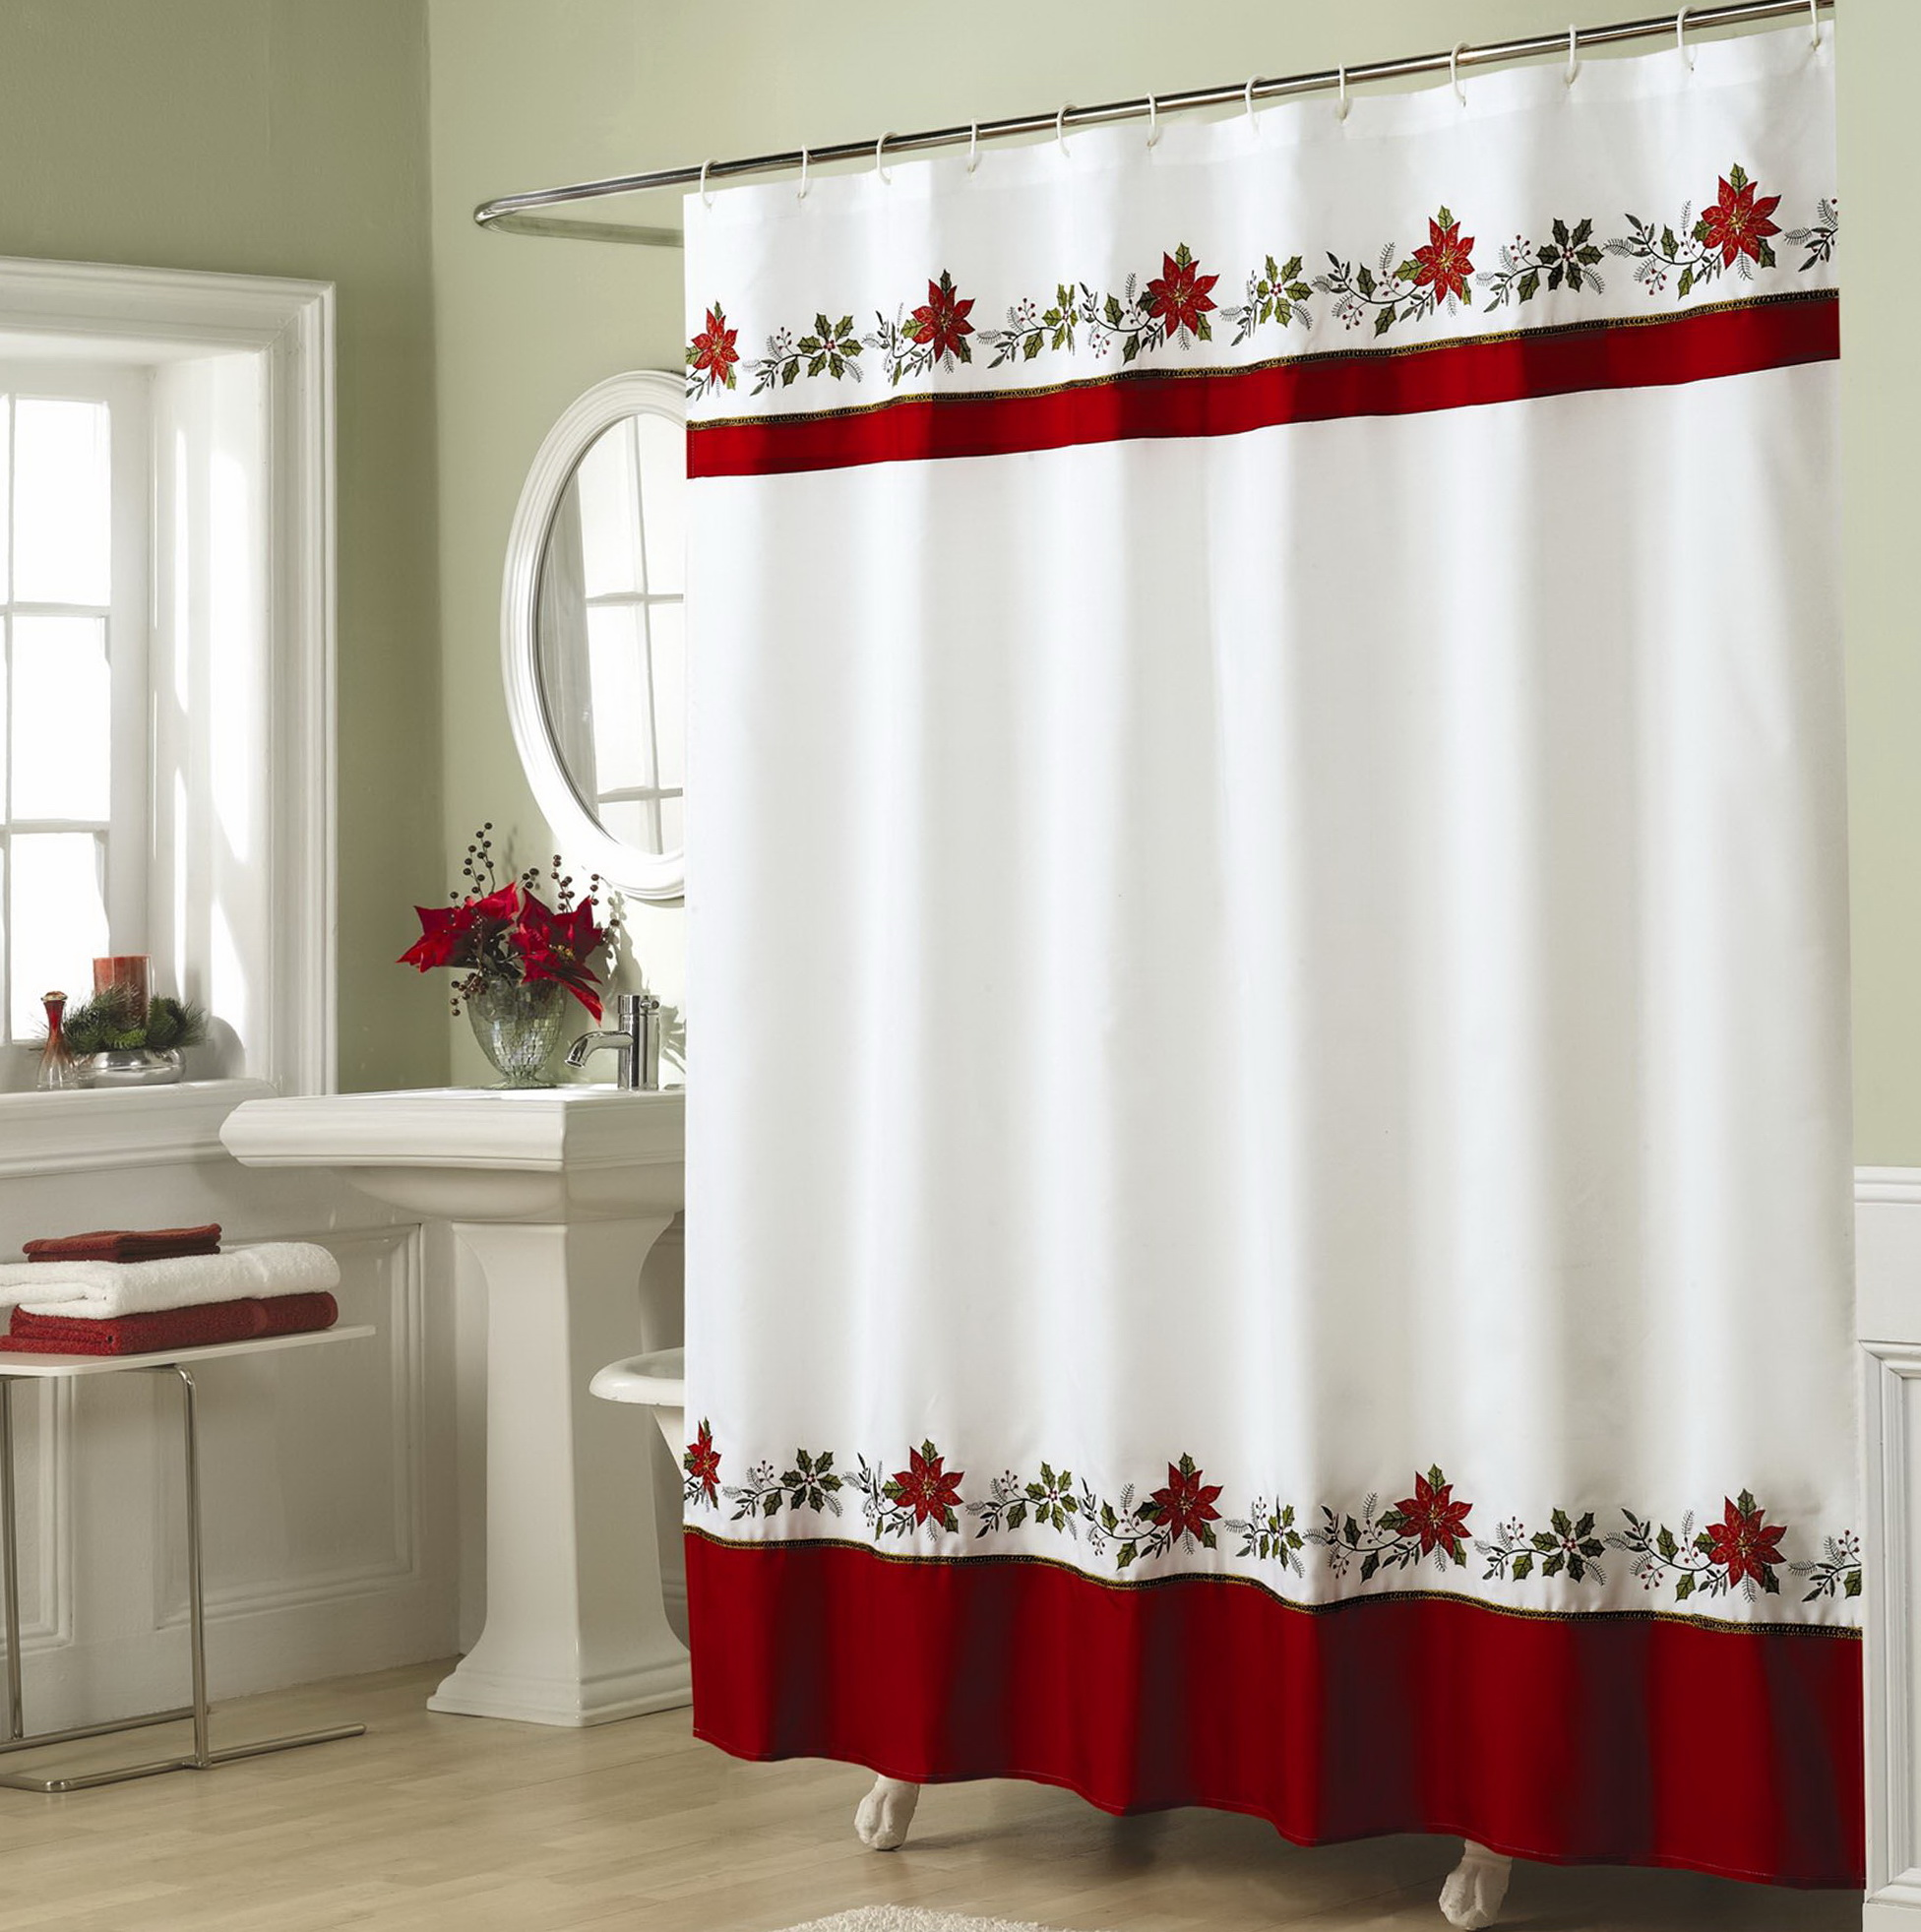 cheap christmas shower curtains home design ideas. Black Bedroom Furniture Sets. Home Design Ideas